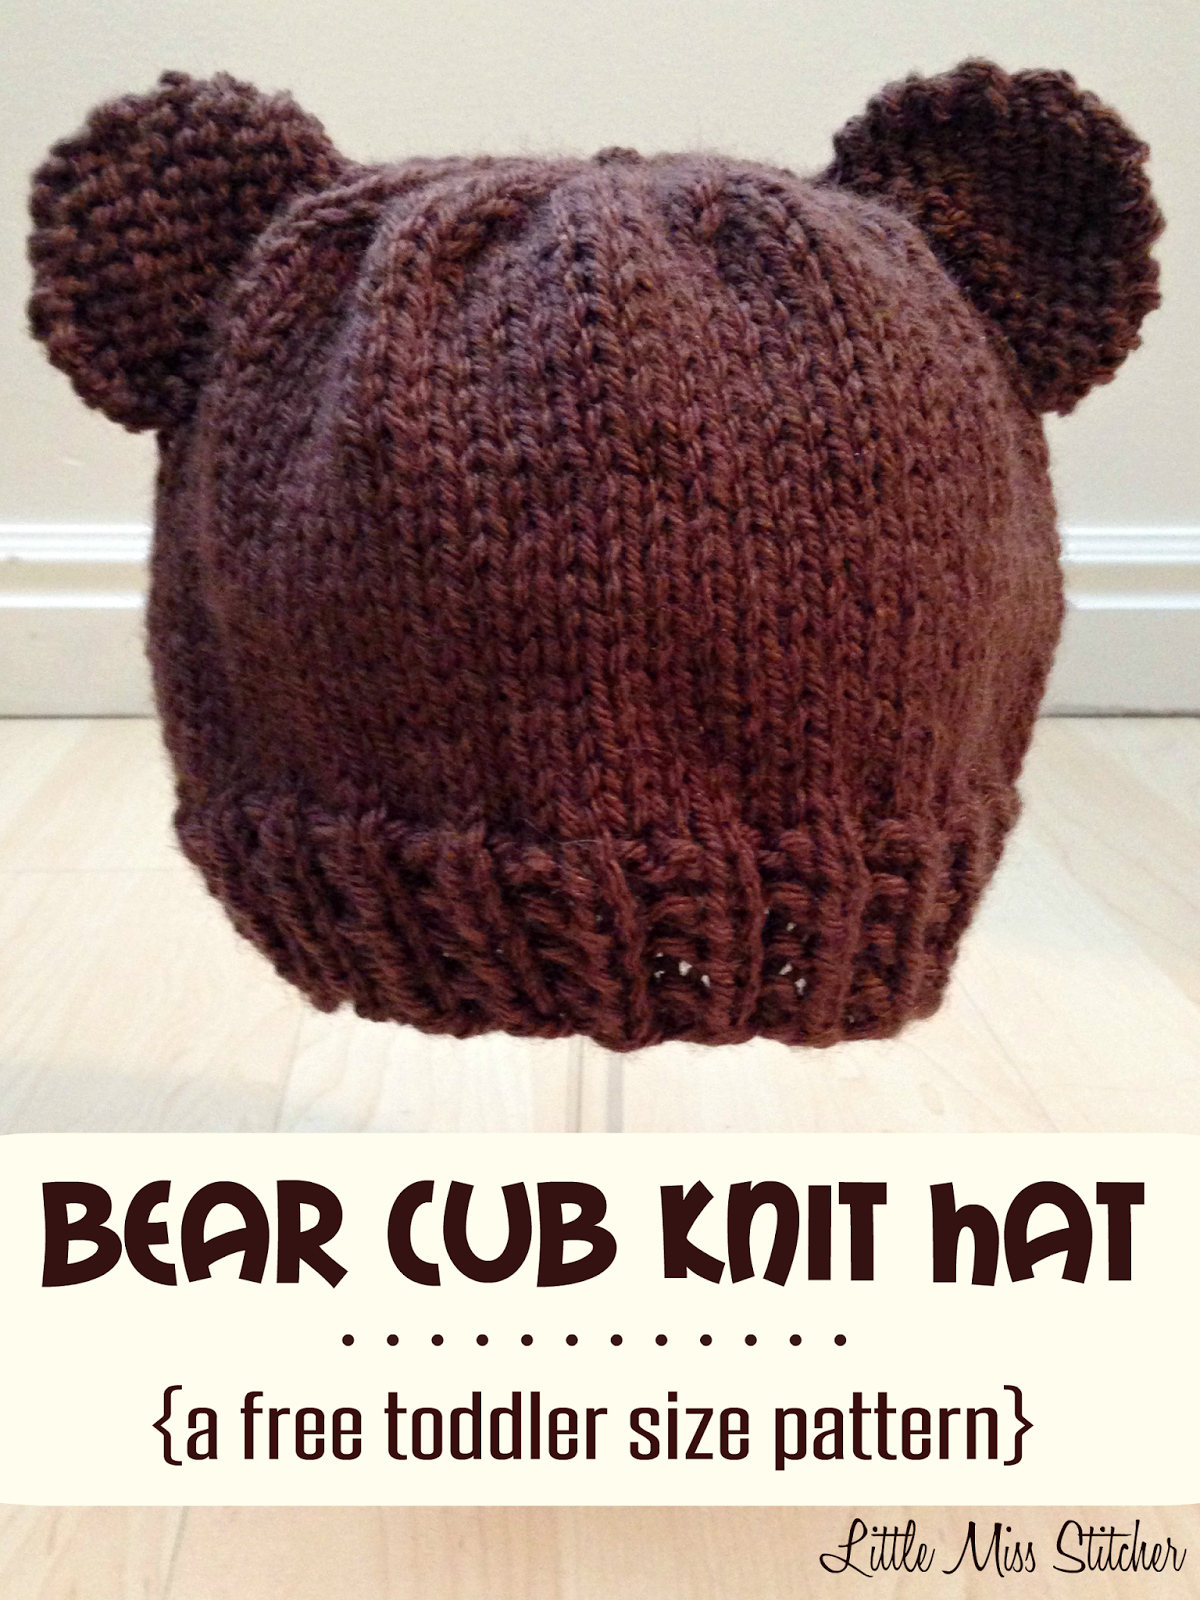 b88be1a72e4 Bear Cub Knit Hat Pattern For Toddlers - thinking I could do this in black  and turn it into Mickey Mouse ears!